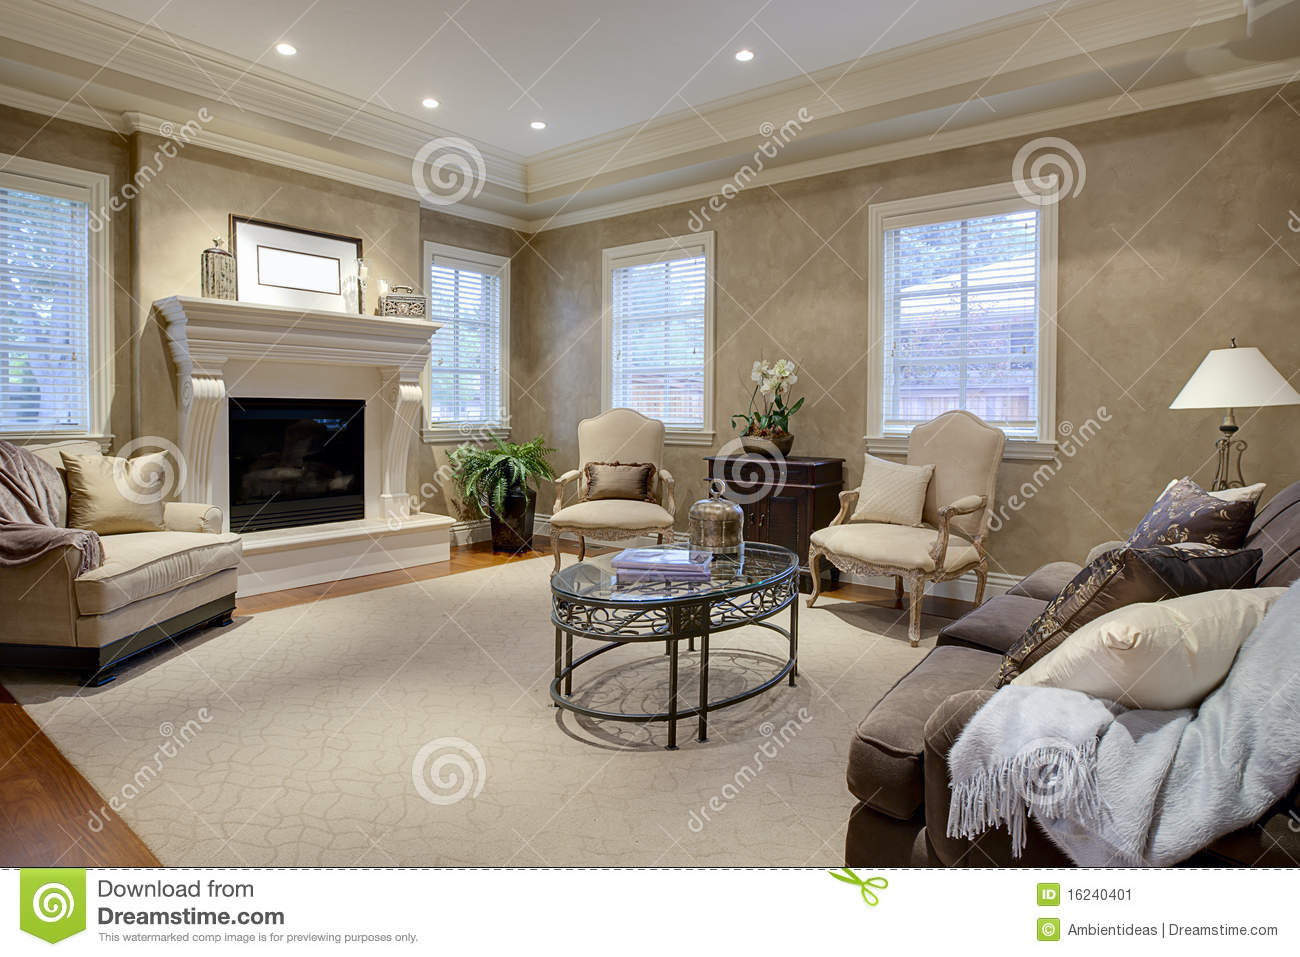 modern living room styles french country ideas elegant lounge stock image - image: 16240401